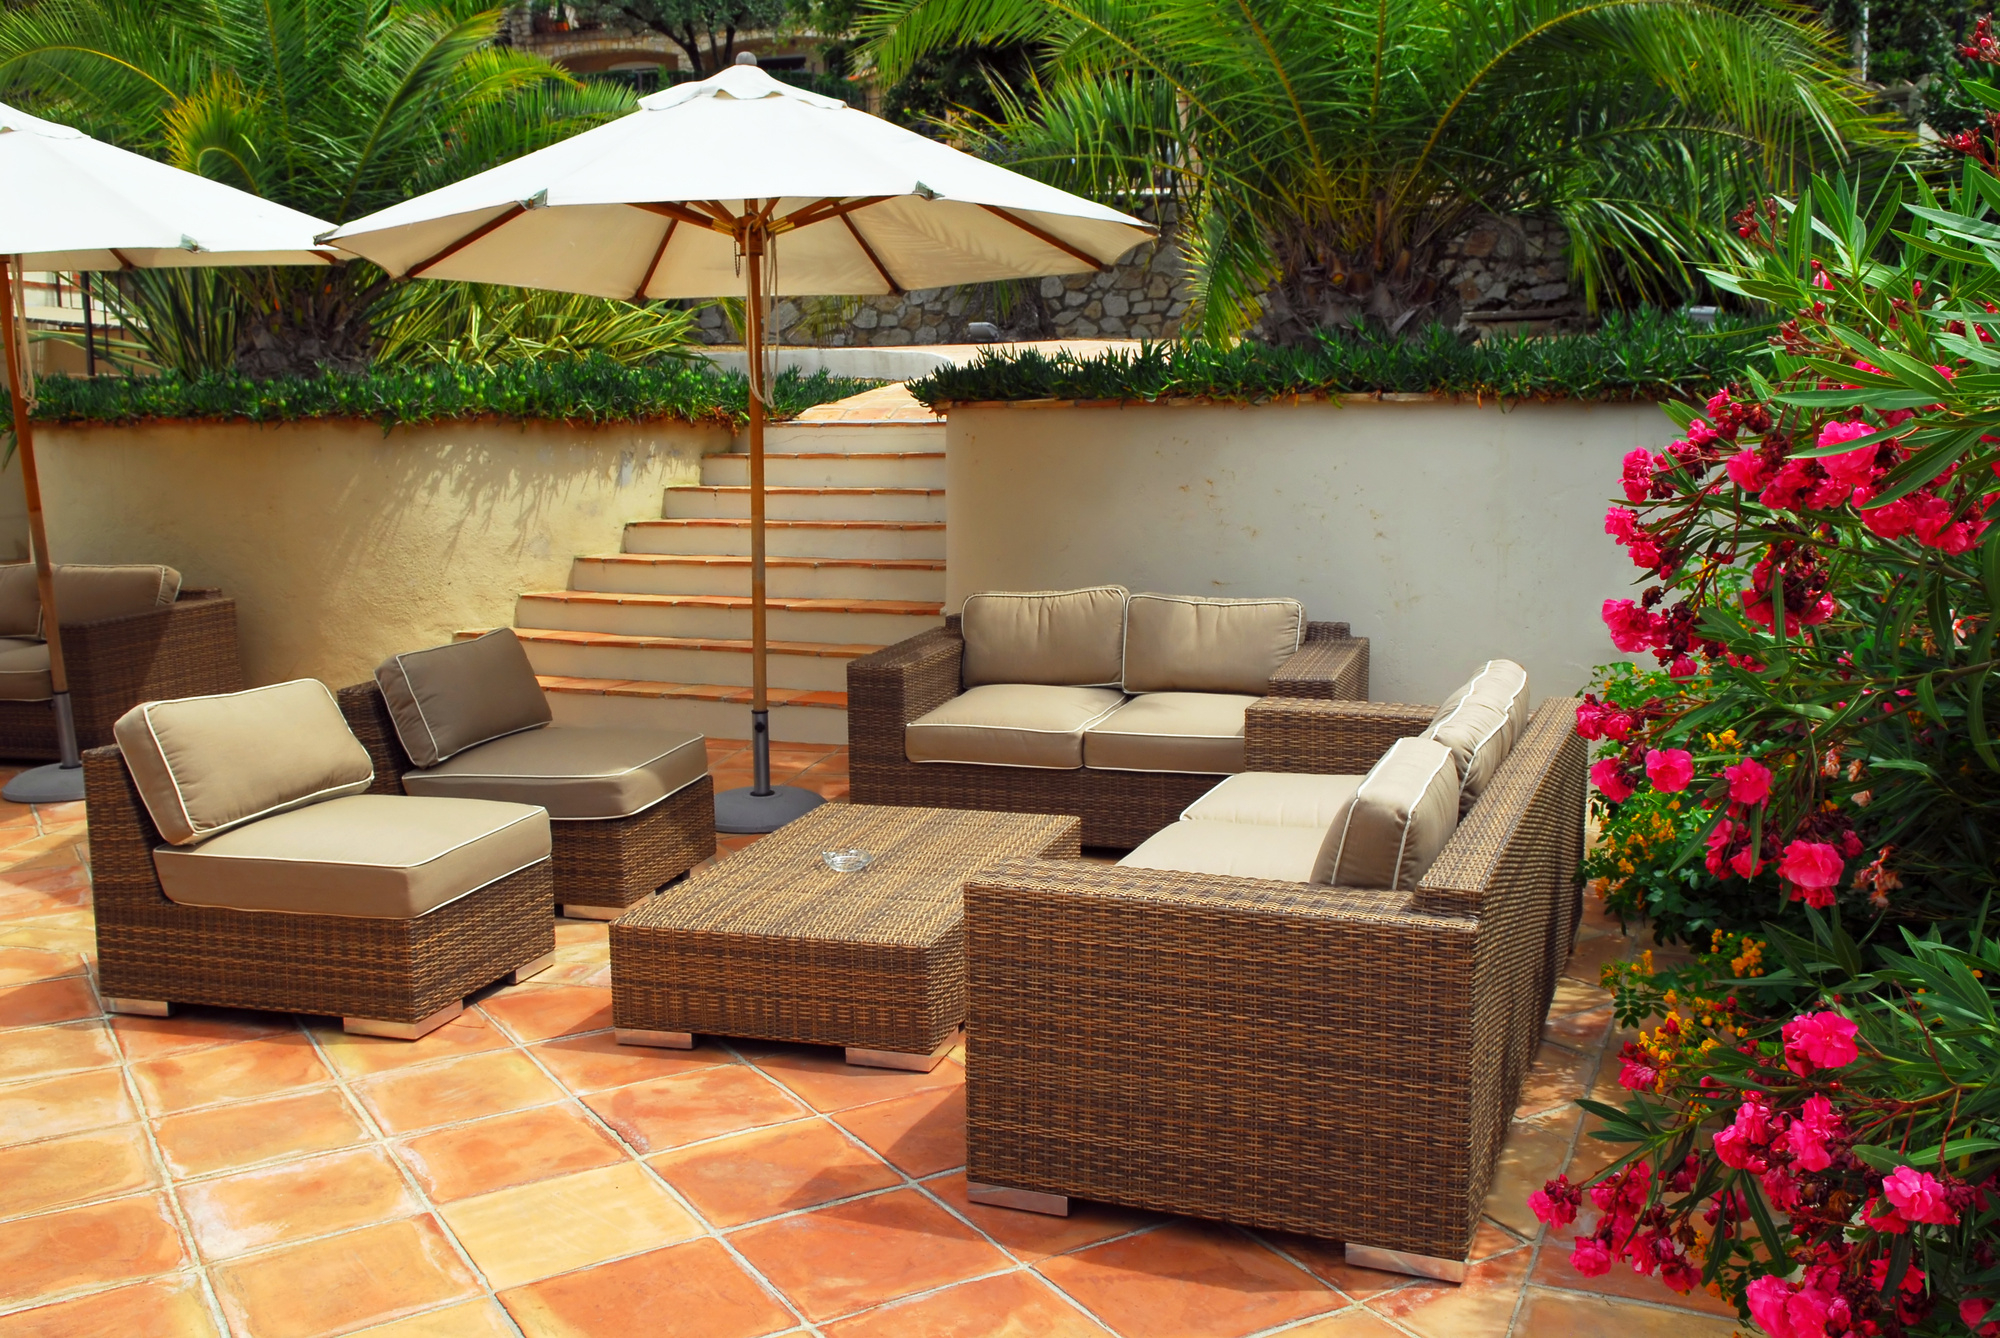 10 Patio Decorating Ideas For The Summer Interior Design intended for 10 Genius Ways How to Make Backyard Patio Decorating Ideas